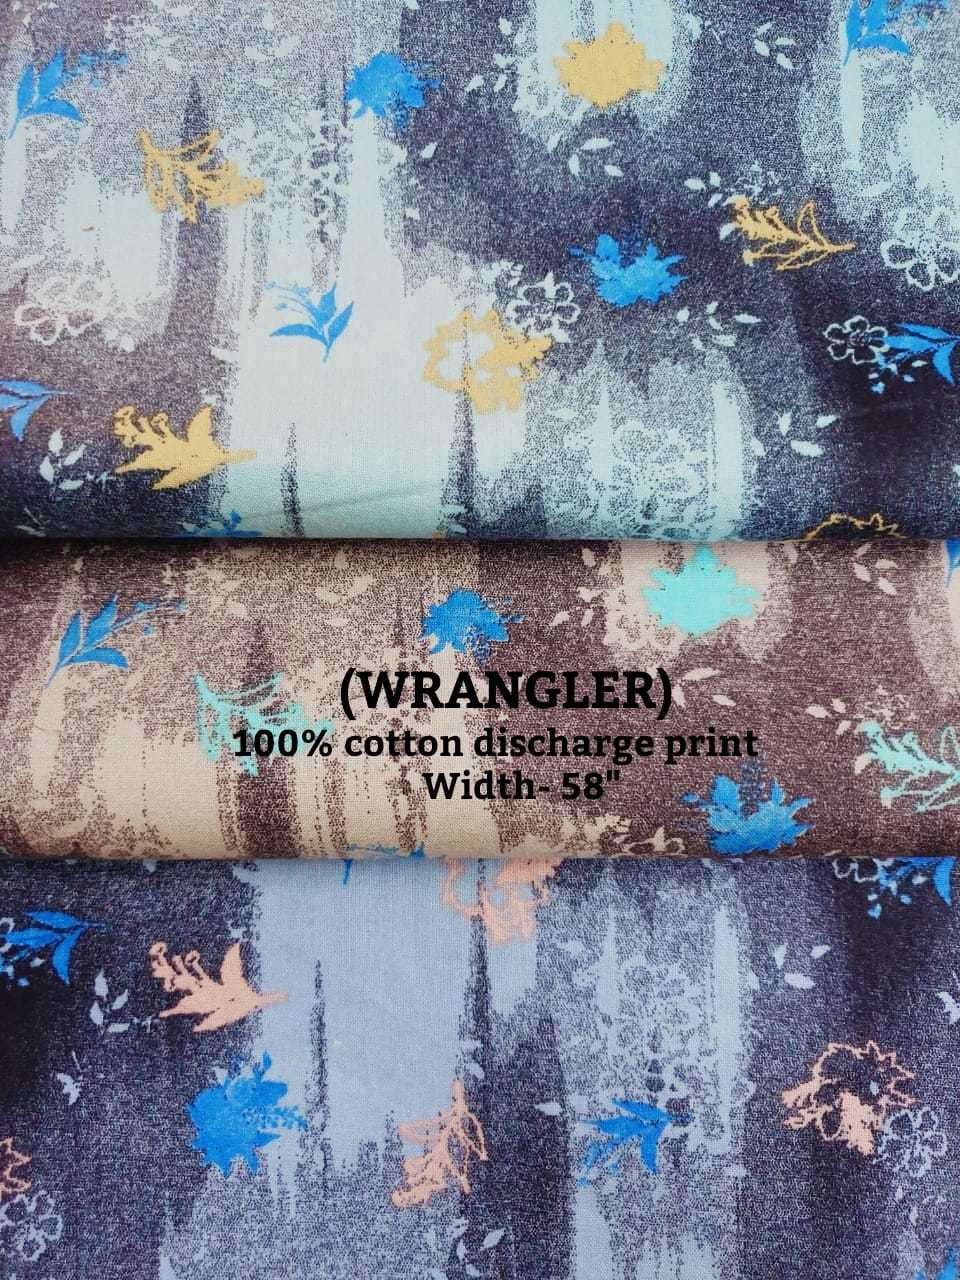 WRANGLER 100% cotton discharge check print